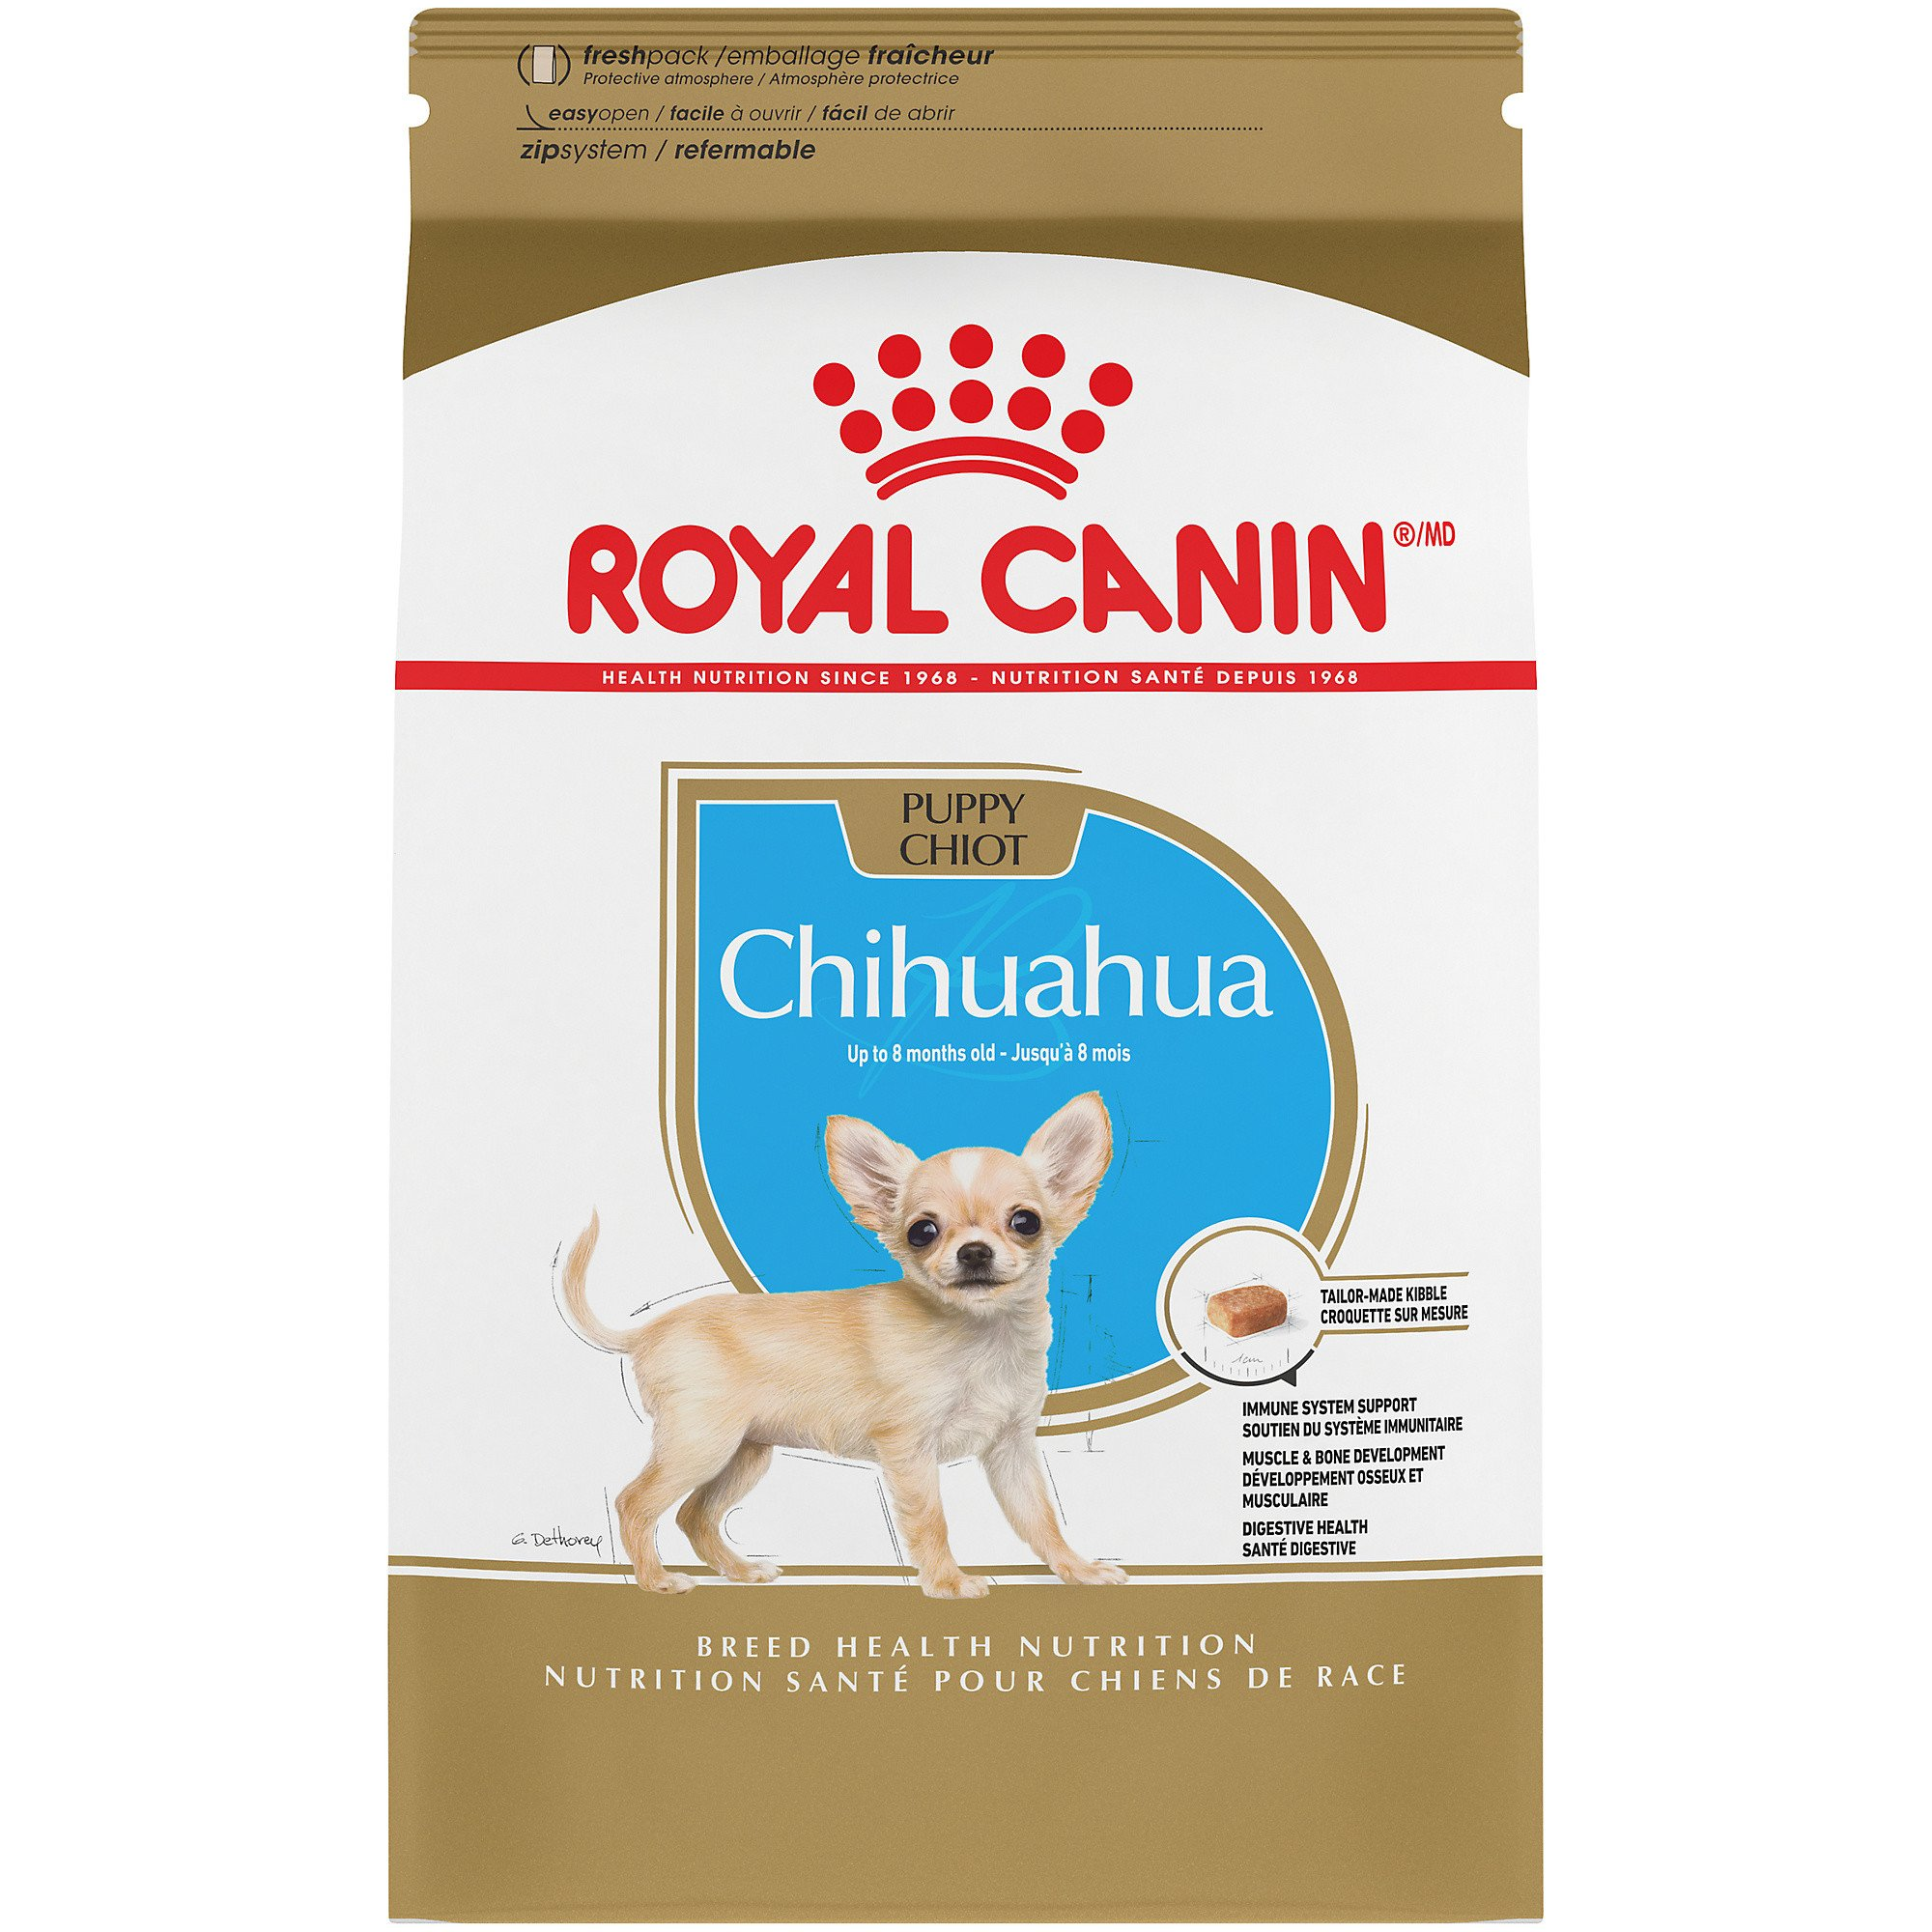 Royal Canin Breed Health Nutrition Chihuahua Puppy Dry Dog Food, 2.5 lbs.